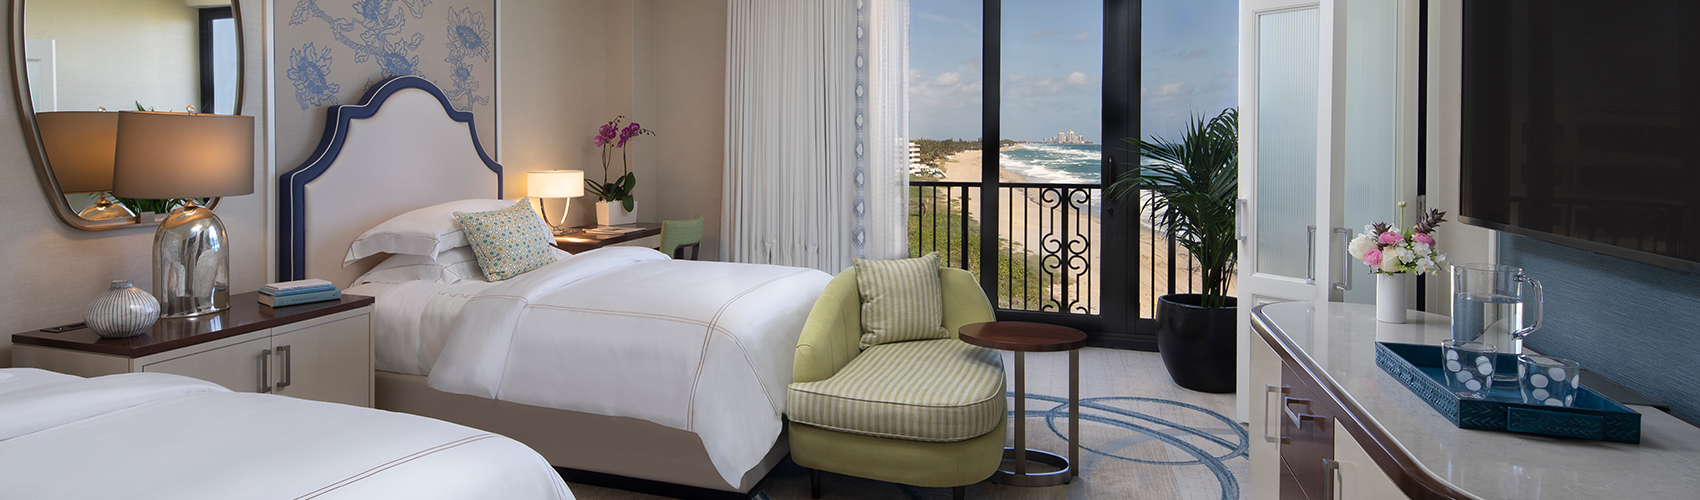 Deluxe Guest Room with Partial Ocean View - Double